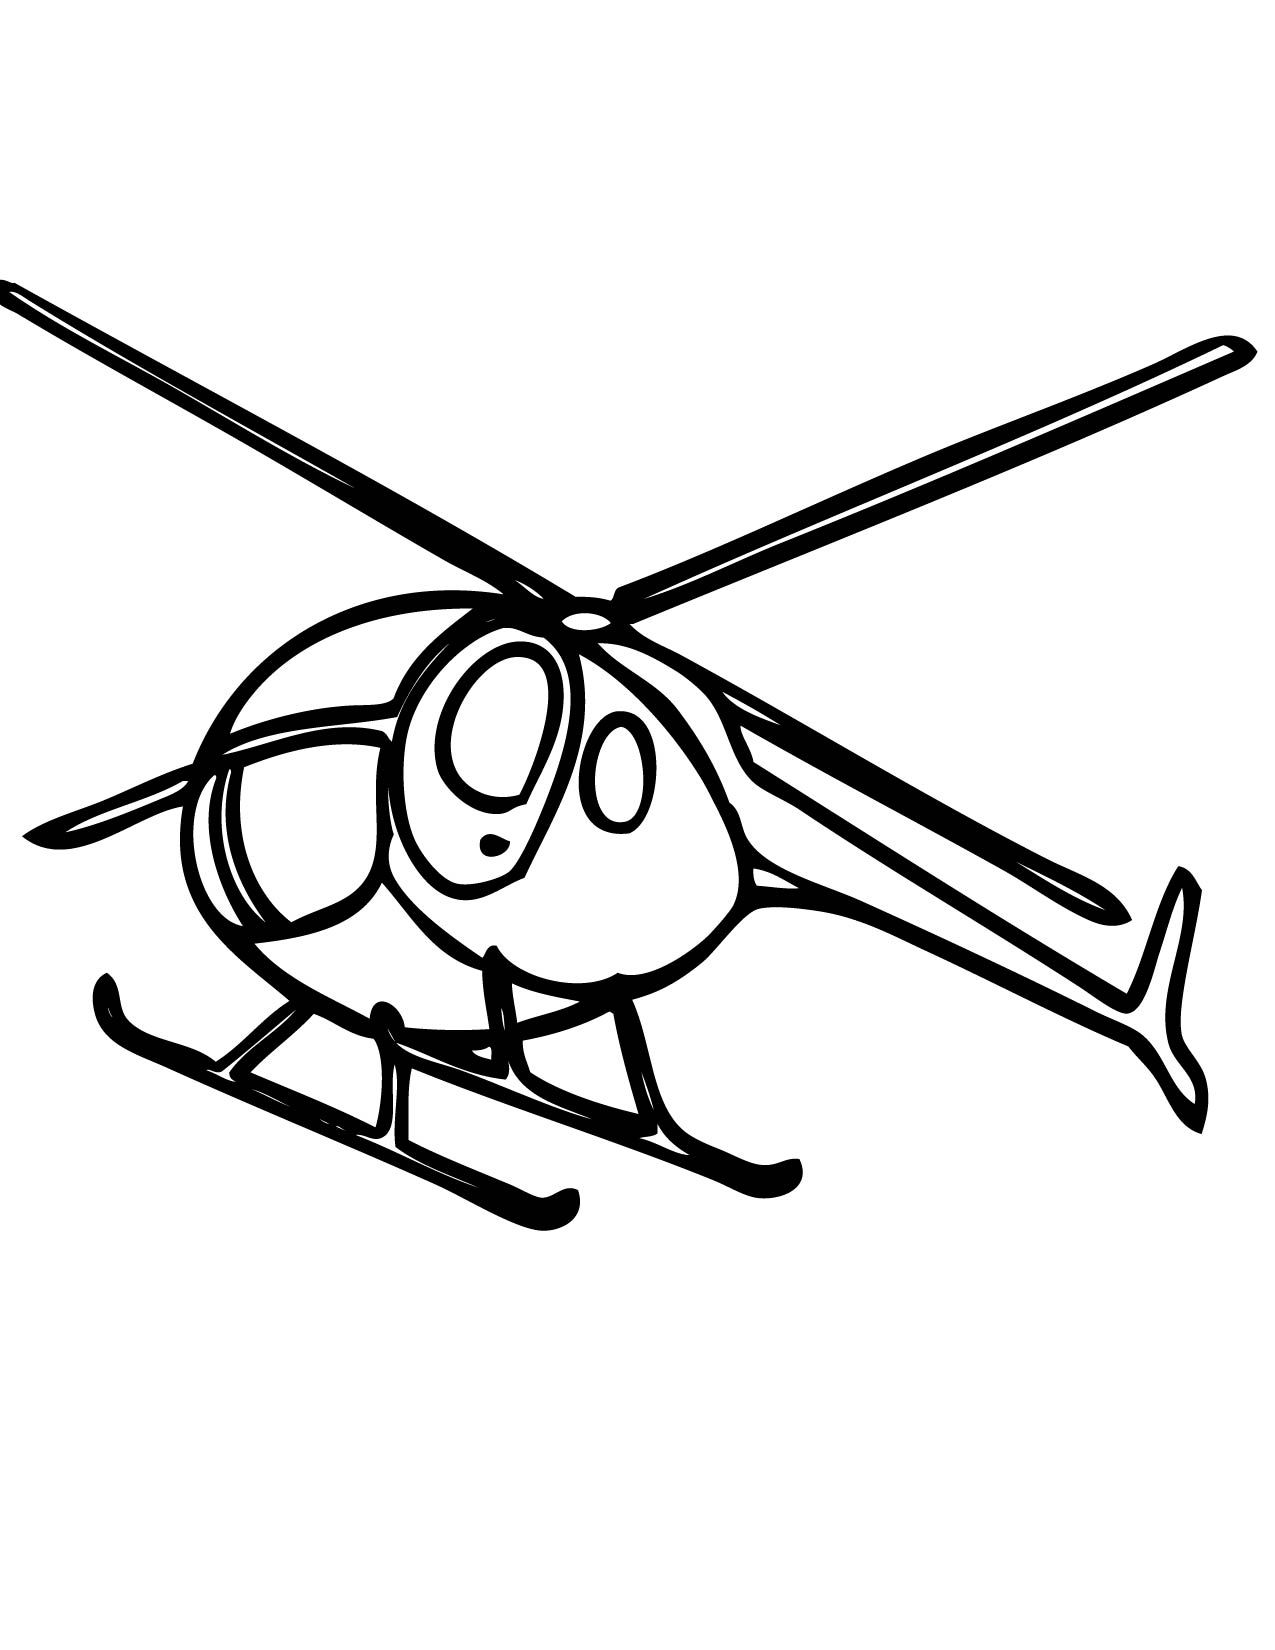 helicopters with a small form factor and modern helicopters MH-60R Helicopter helicopters with a small form factor and modern coloring pages for kids coloring books